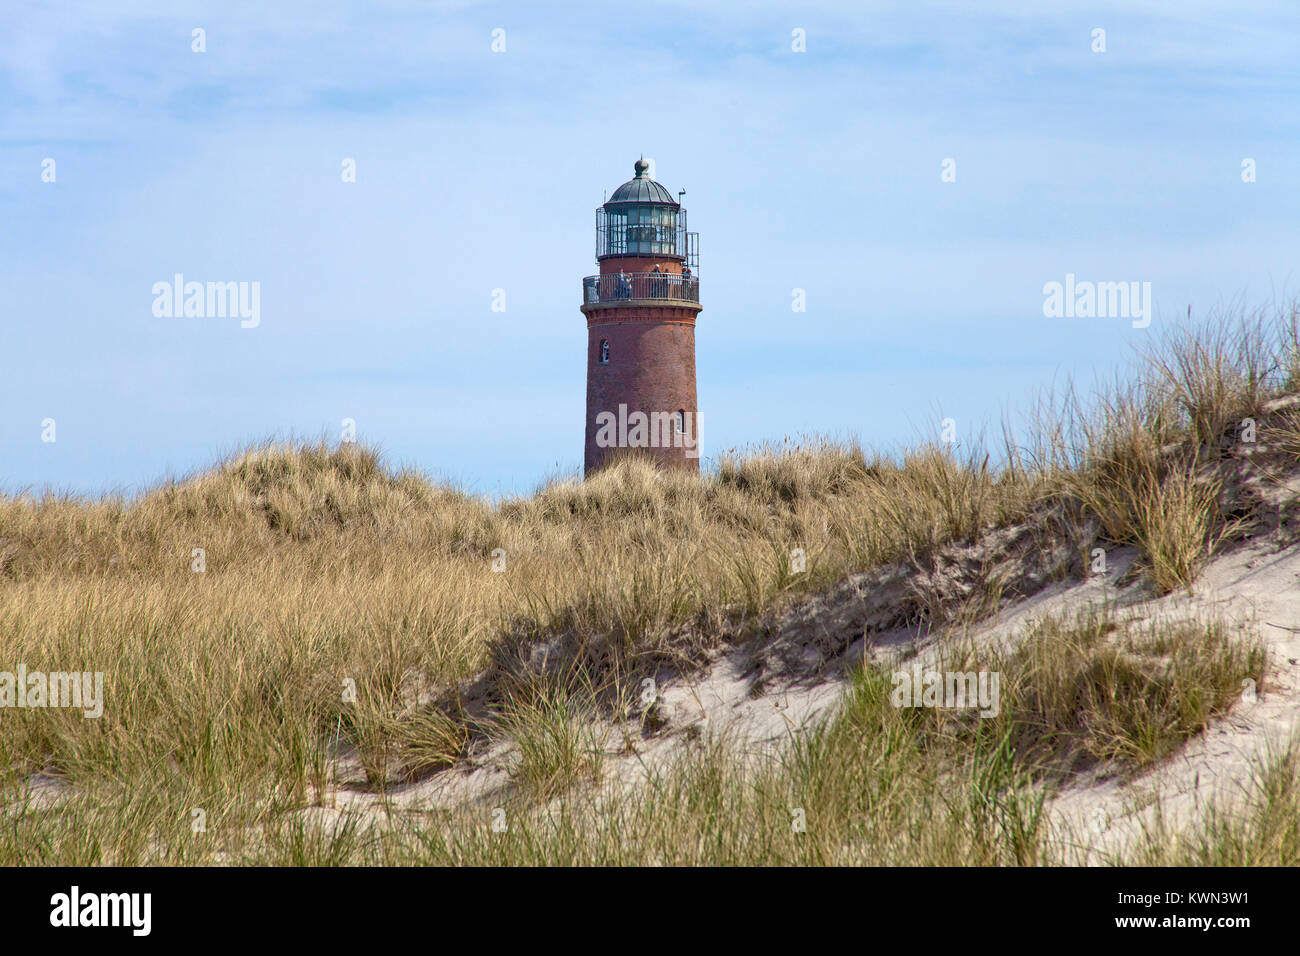 Lighthouse and sand dunes with marram grass at the 'Darsser Ort', Prerow, Fishland, Mecklenburg-Western - Stock Image